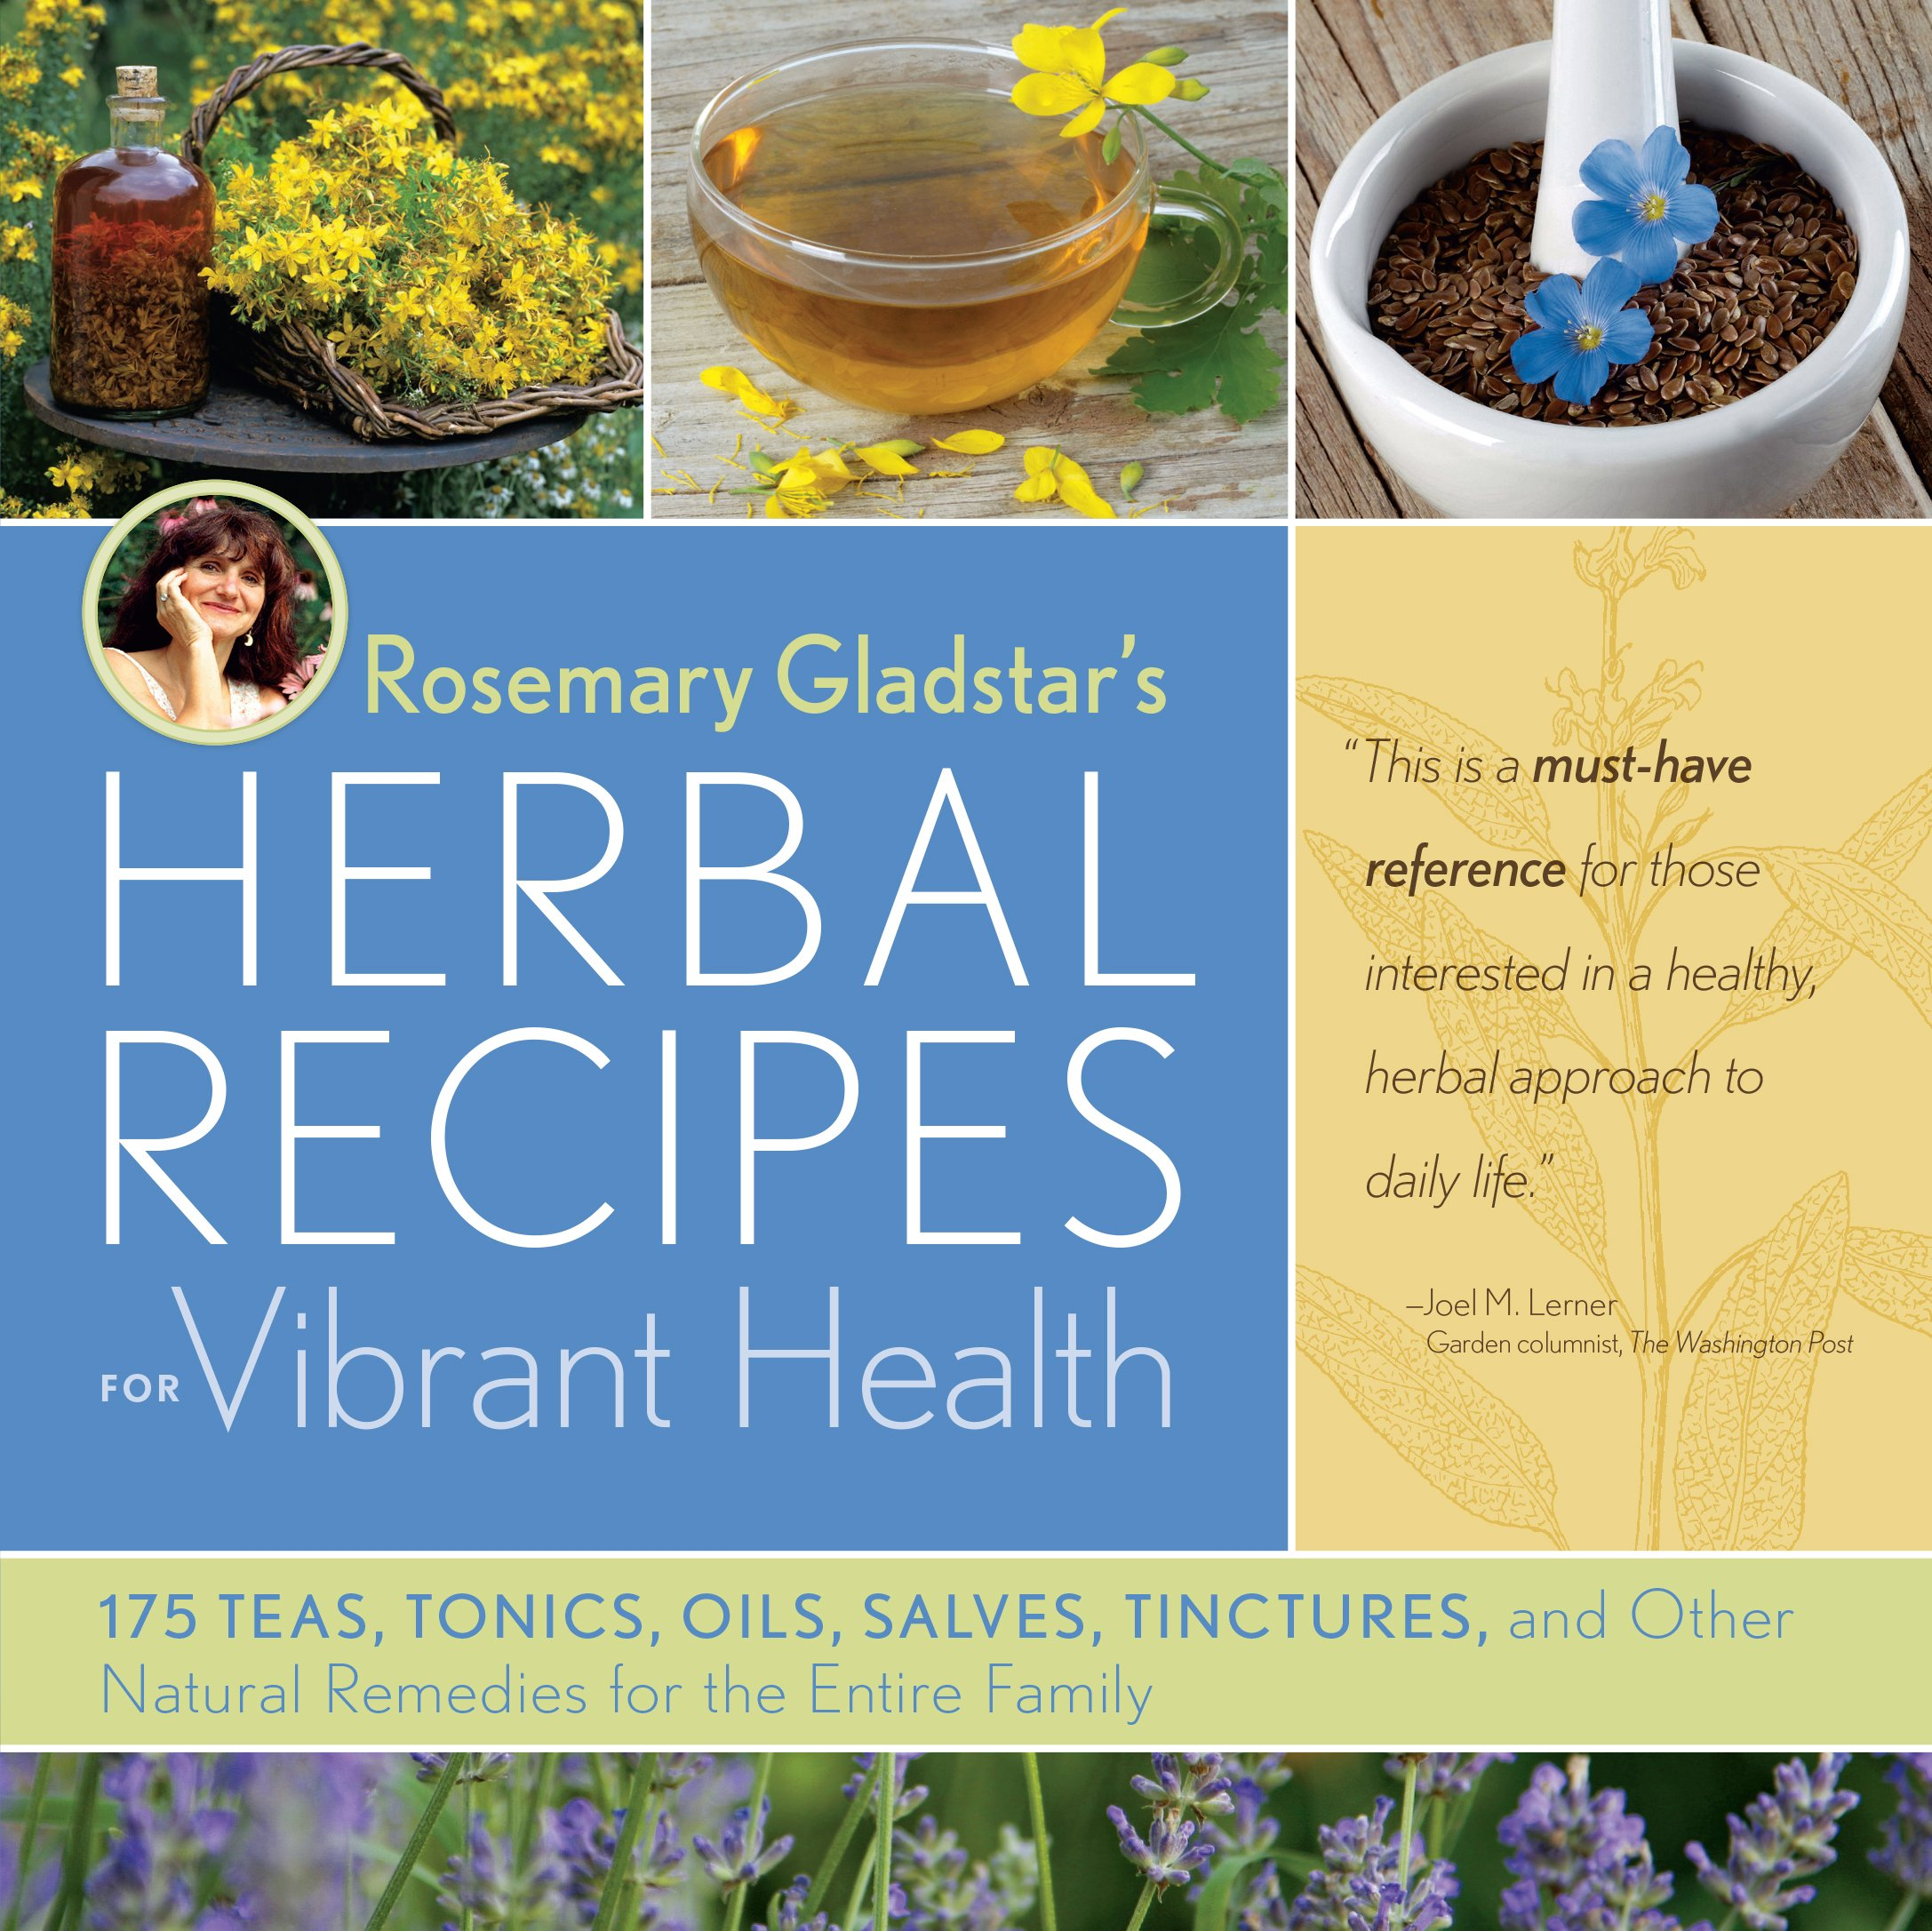 Rosemary Gladstar's Herbal Recipes for Vibrant Health: 175